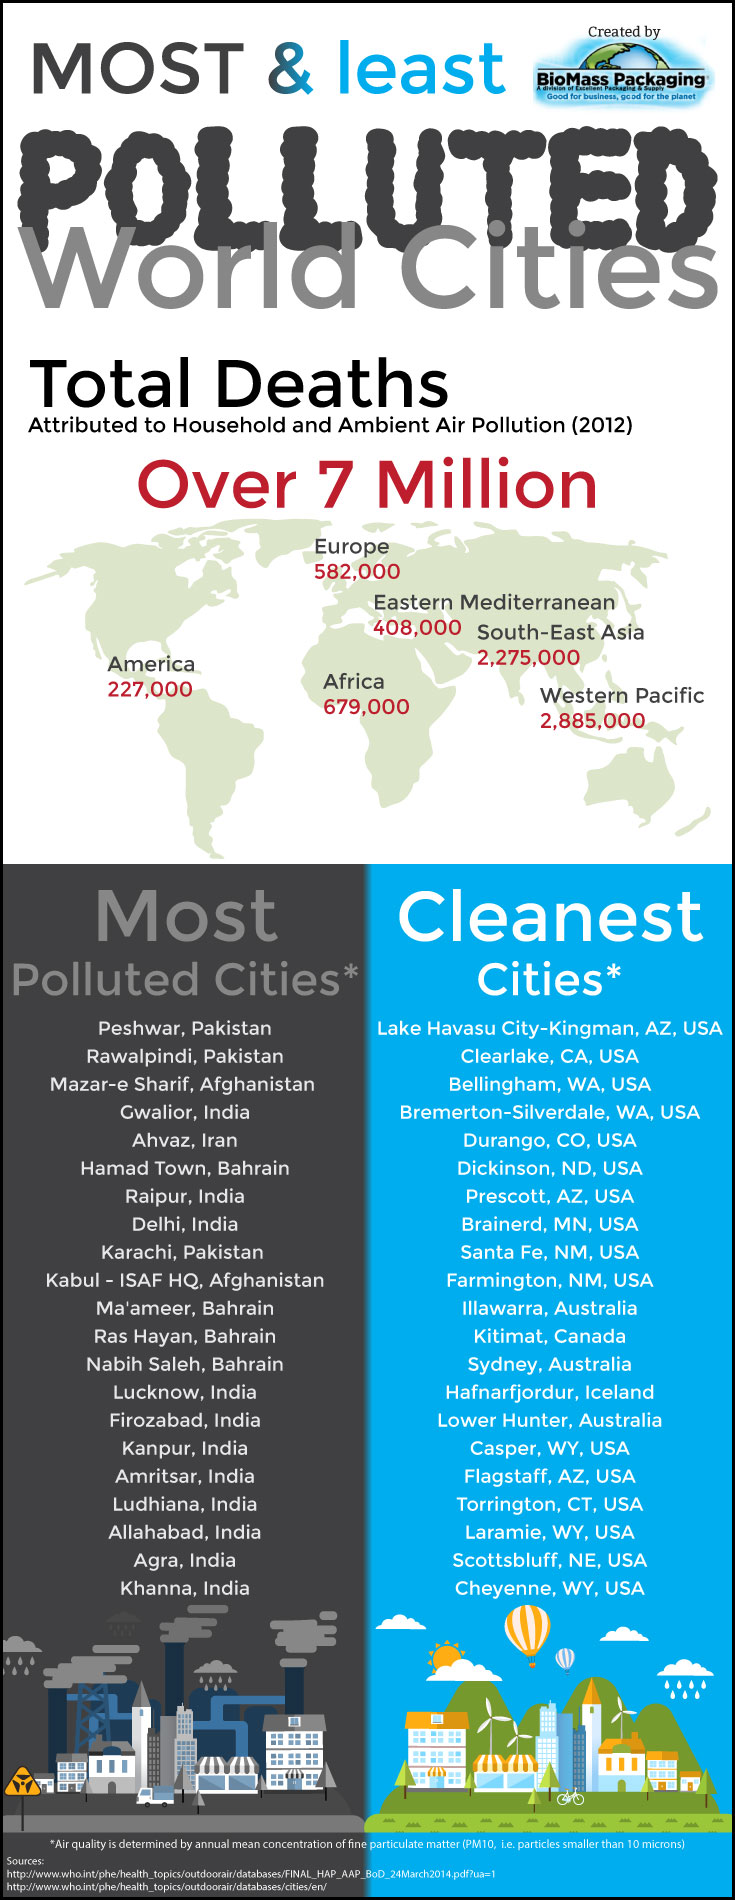 Most/Least Polluted Cities